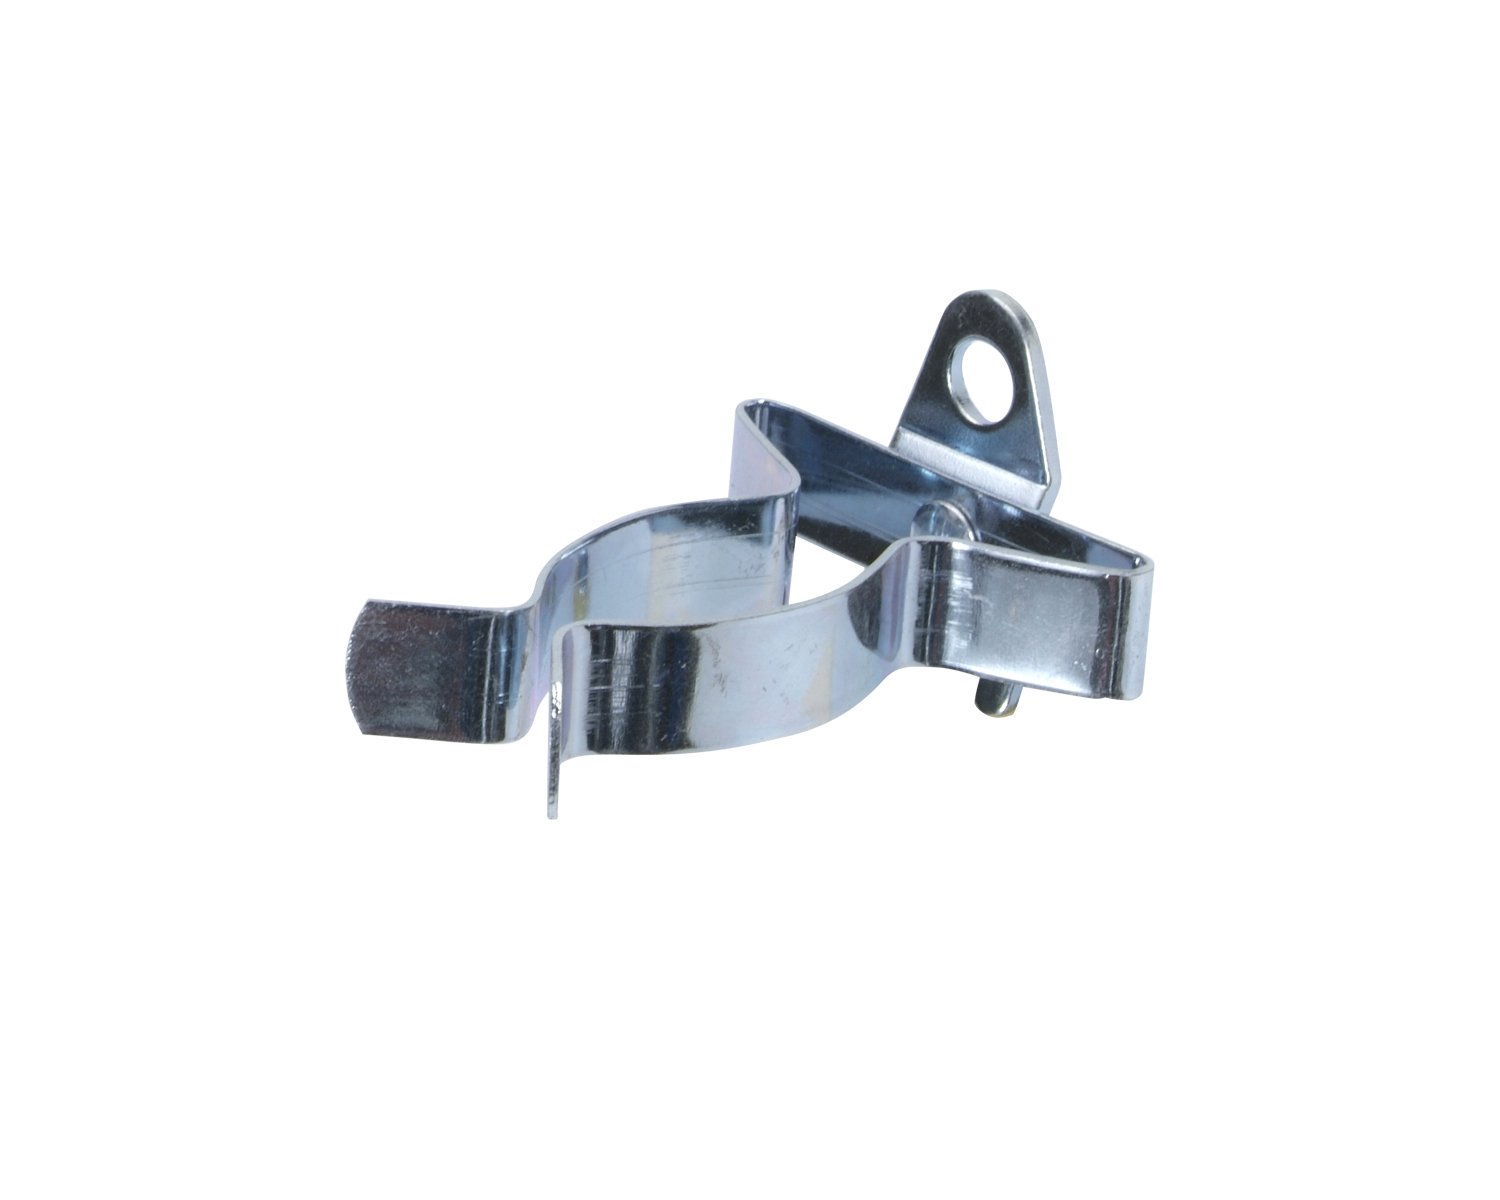 Triton Products 1 In. to 2 In. Hold Range 2-7/8 In. Projection, Annealed Chromate Dipped Steel Ext Spg Clips for DuraBoard or 1/8 In. and 1/4 In. Pegboard, 5 Pack